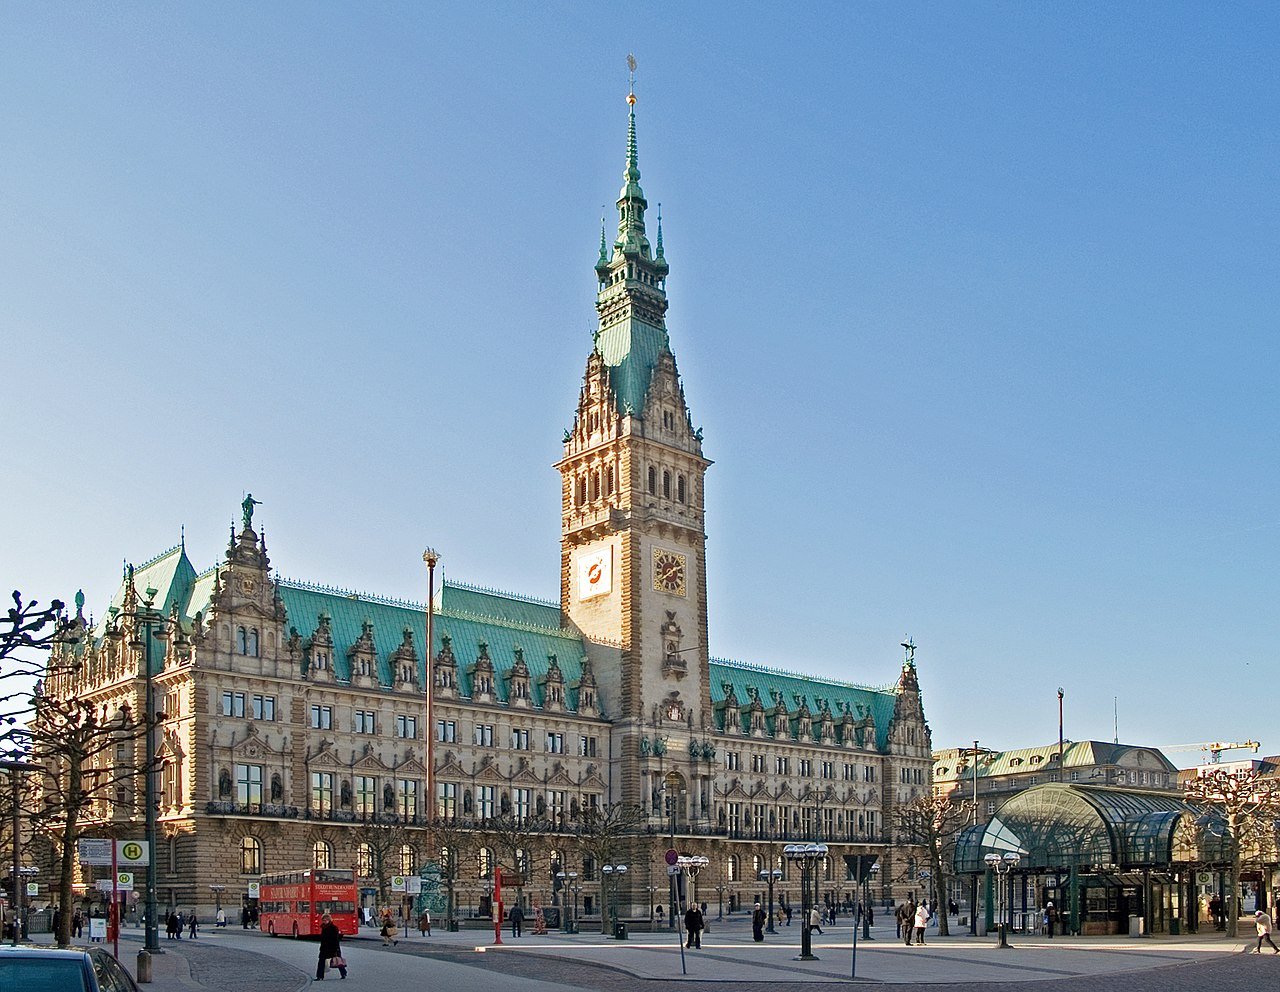 Hamburger Rathaus- one of the must-visit places in Hamburg